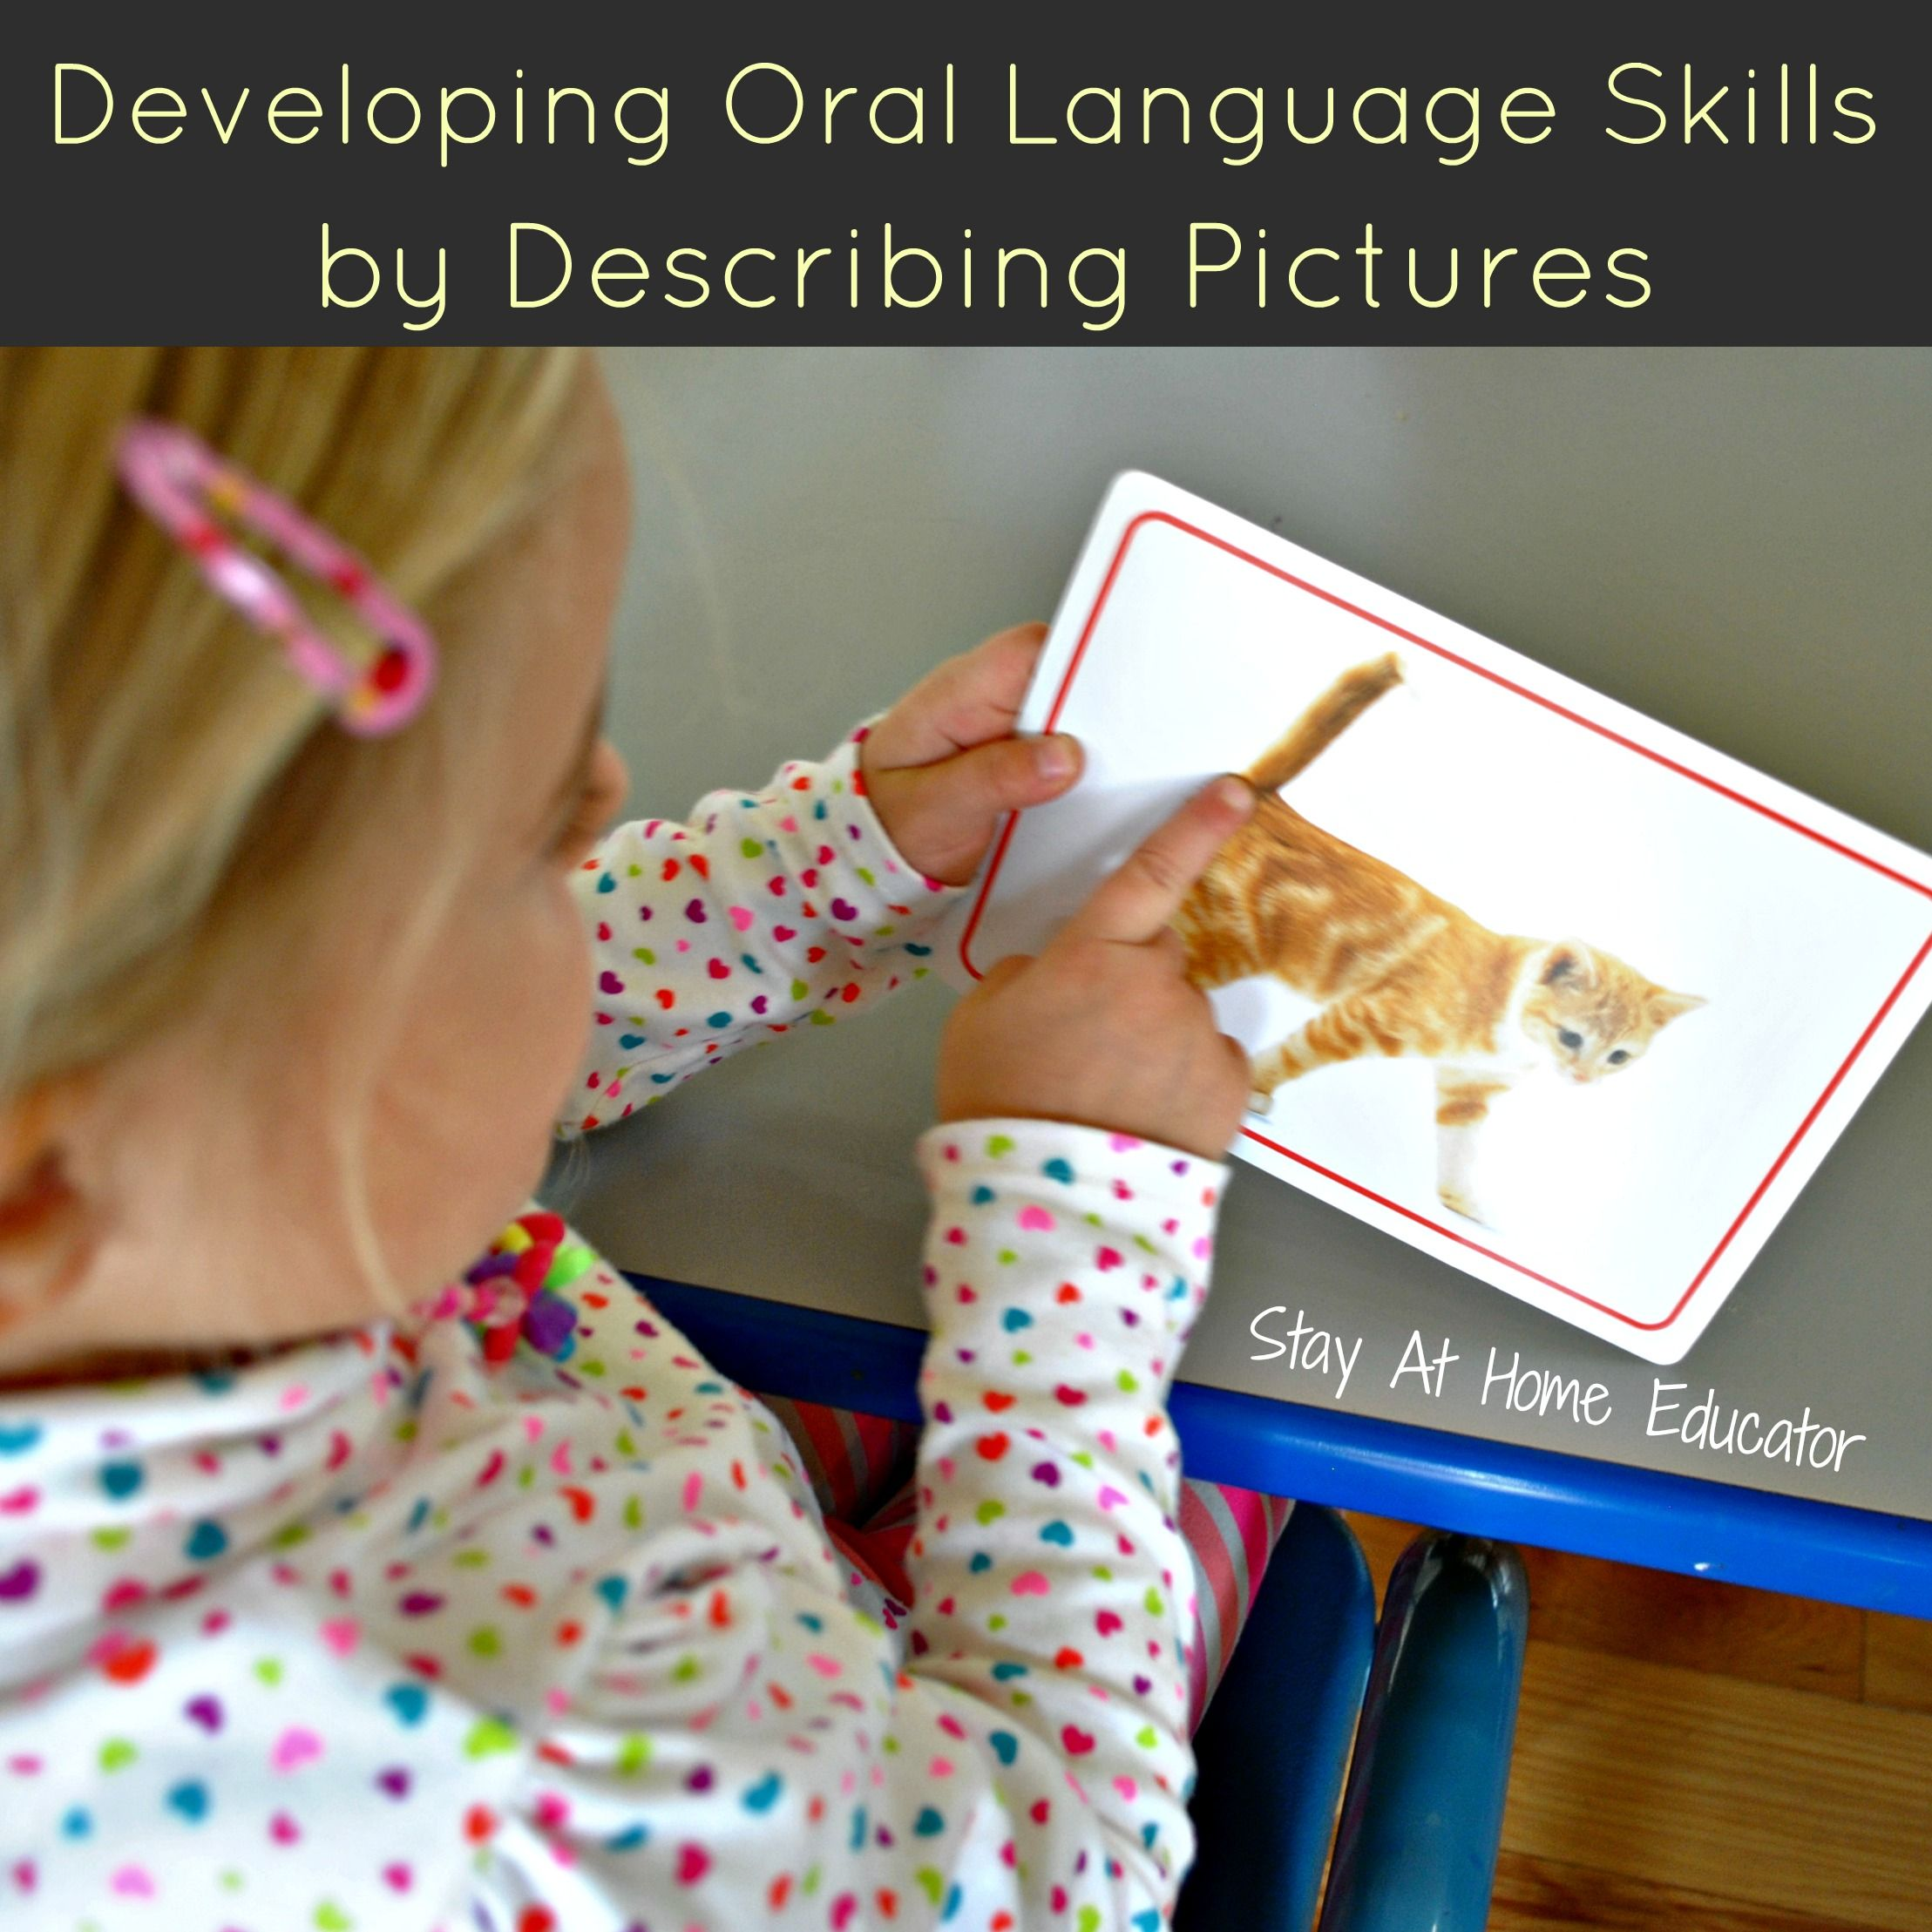 Using Pictures To Develop Oral Language Skills